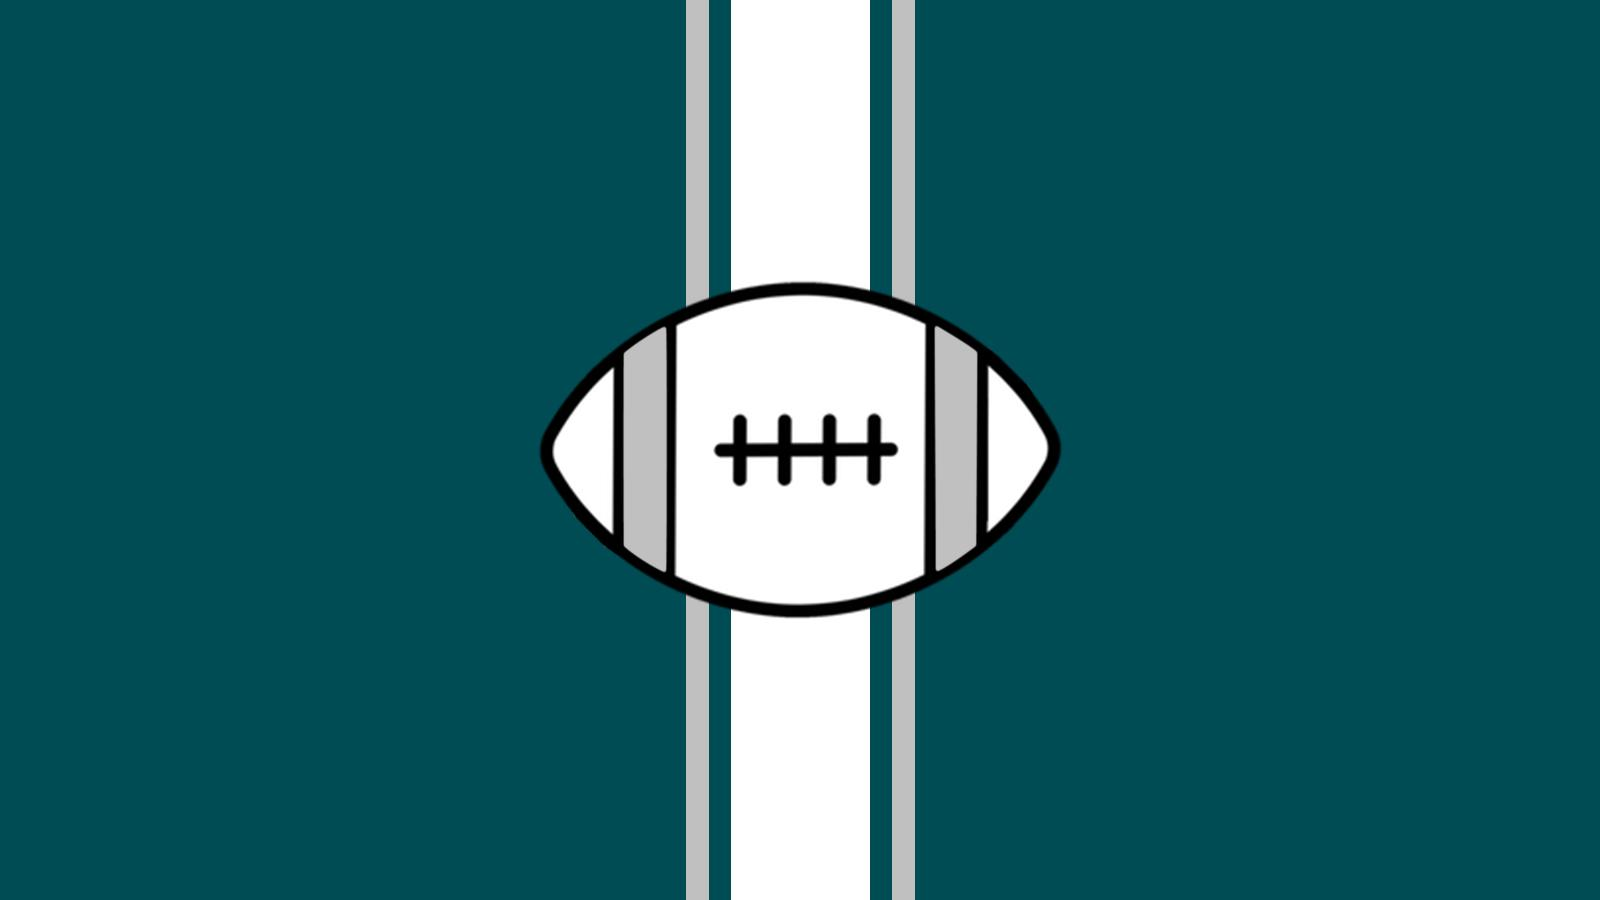 NFC Championship Game - TBD at Philadelphia Eagles (Date TBD) (If Necessary)